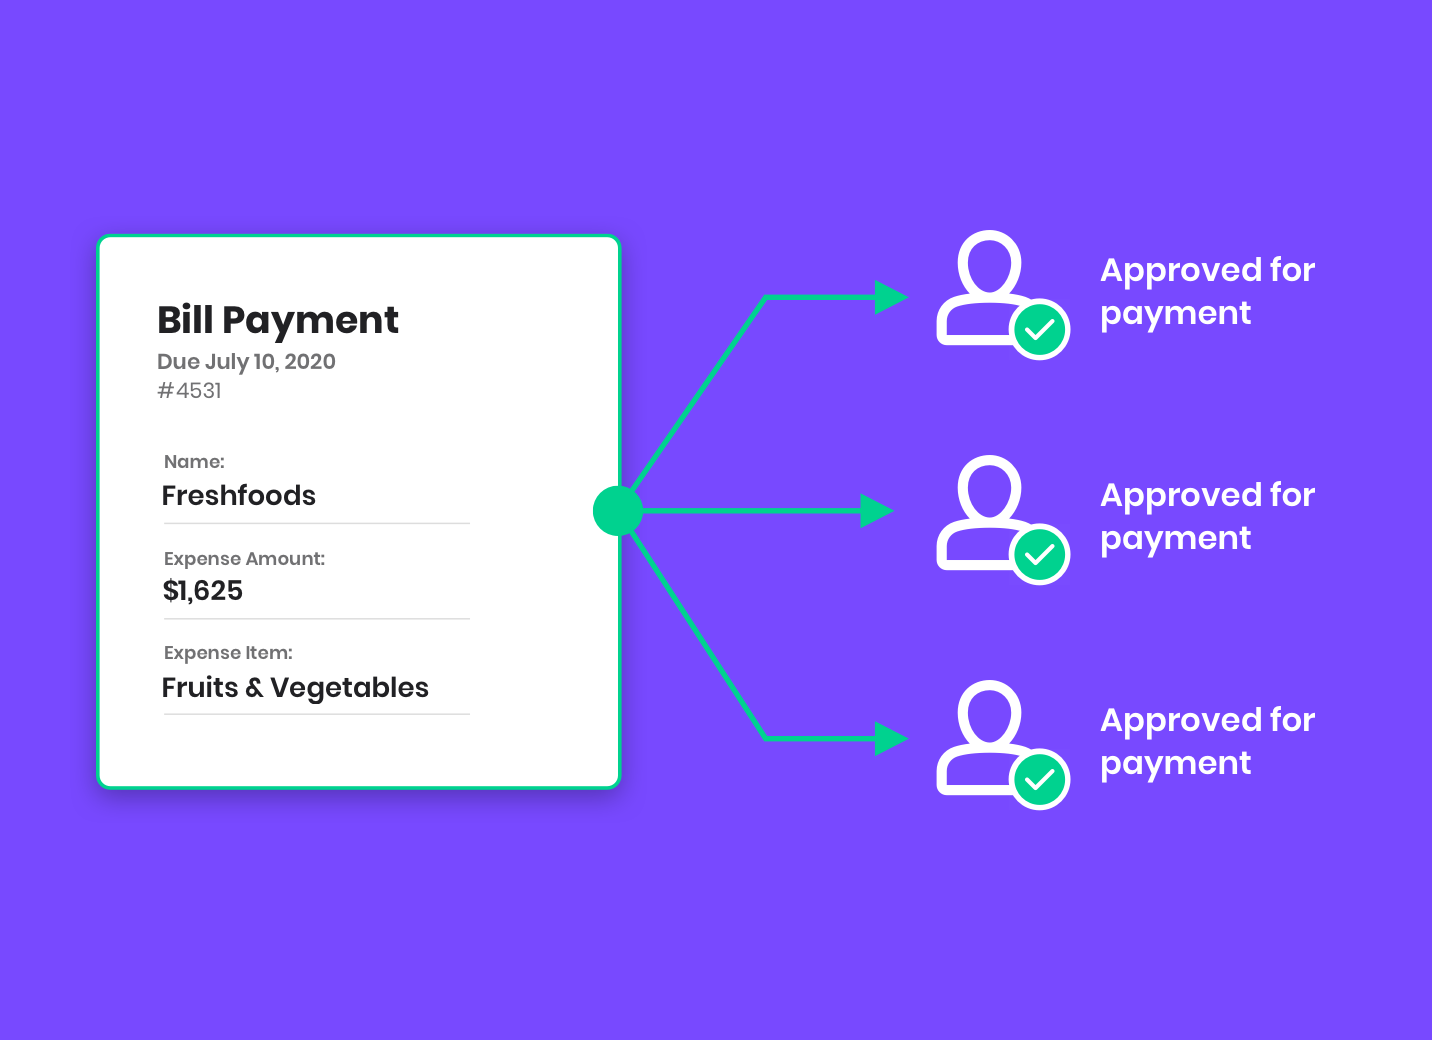 Here's why payment approval workflows will make your small business more efficient